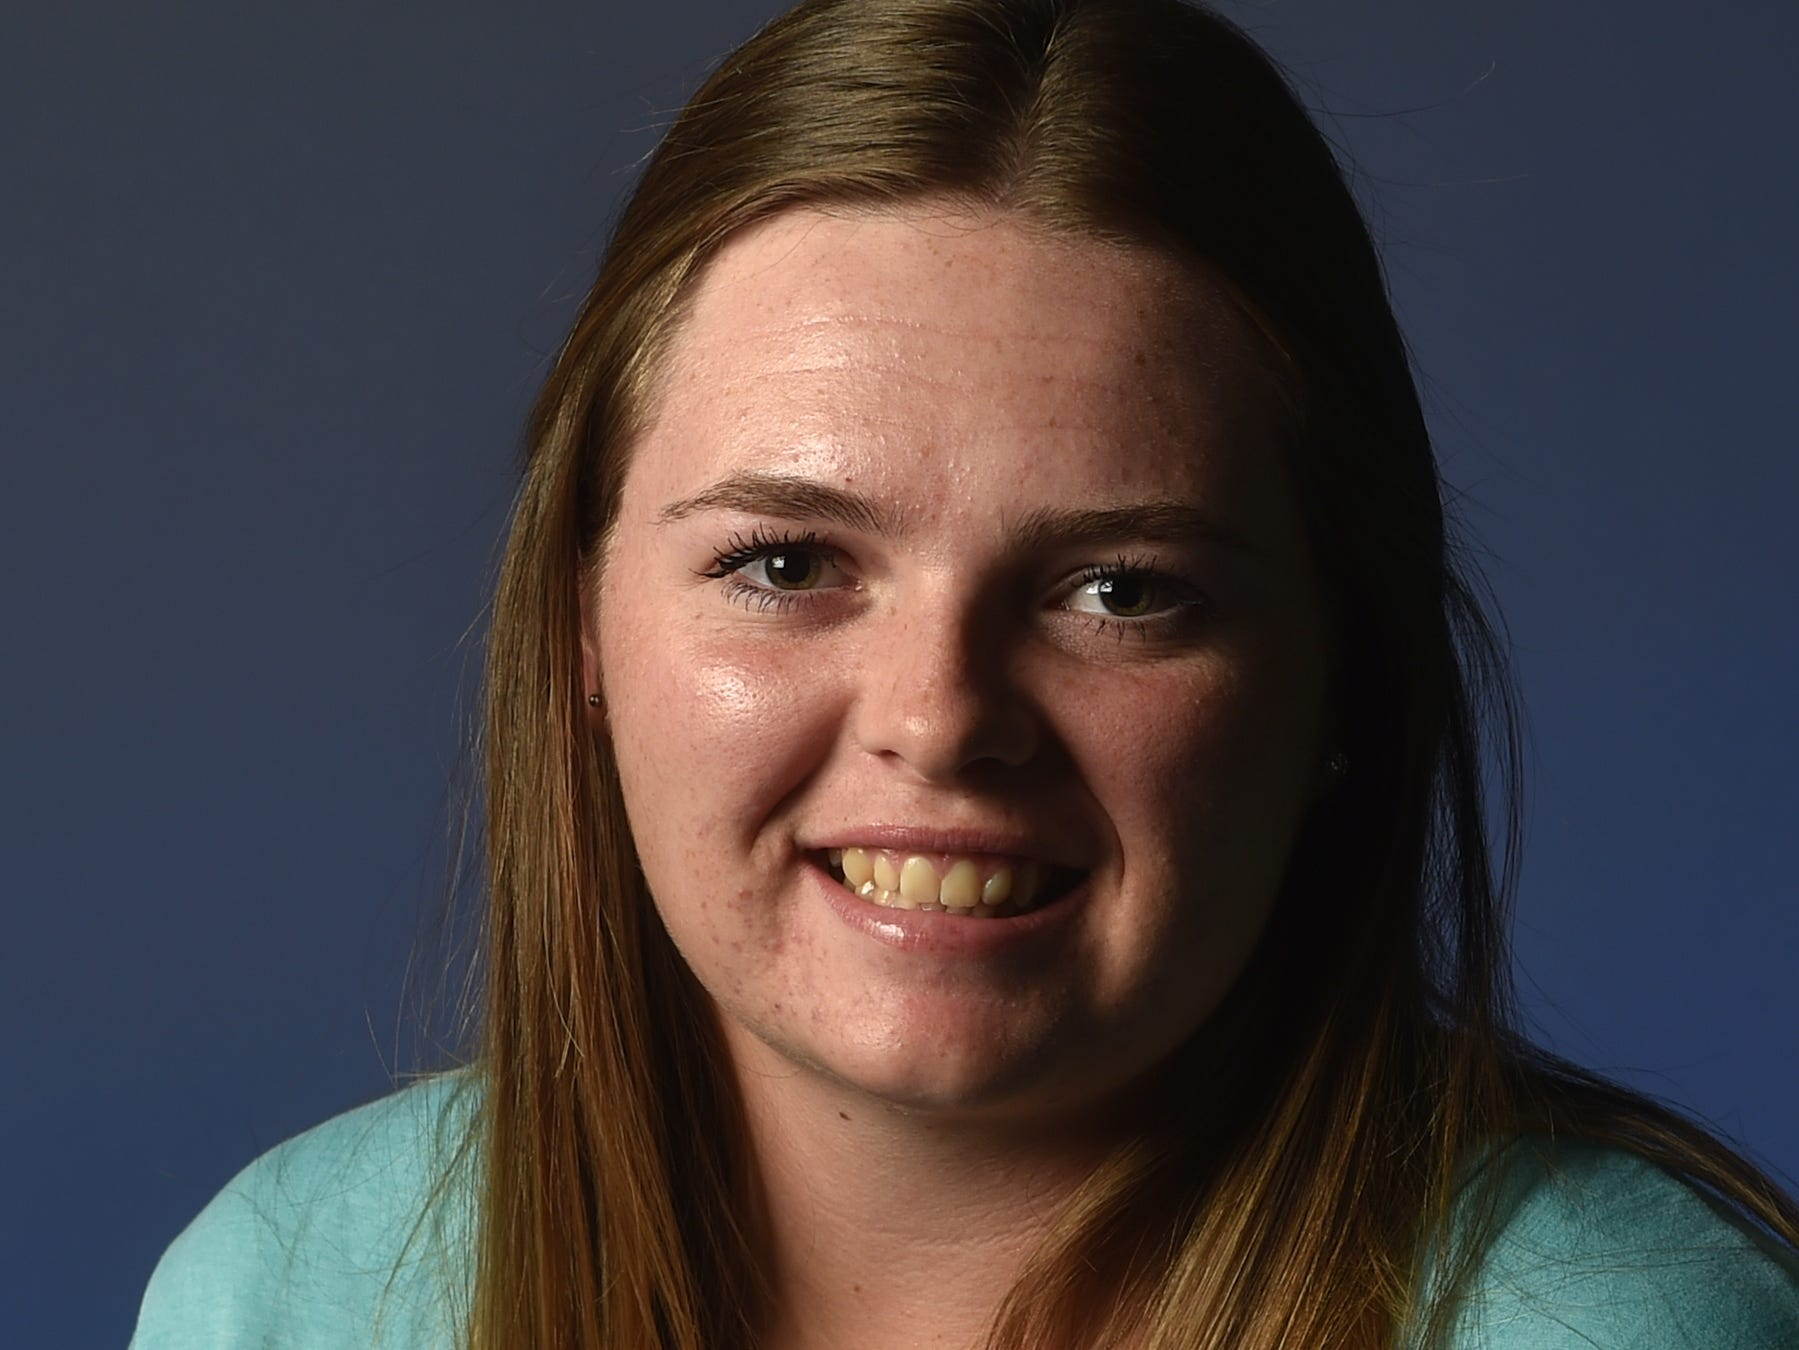 "ADELINE ANDERSON, Buena: The sophomore was the medalist in 10 of the 12 matches she played and helped Buena win the Pacific View League team title while finishing second as individual in the league tournament in the Bulldogs' first year in the PVL. Anderson finished tied for sixth by shooting a 71 at the CIF-Southern Section Northern Regional Individual tournament to reach the second round of the postseason. The two-time team MVP's best score was a 1-under 35 at Olivas Links. A yearbook adviser, Anderson lists her hobbies as calligraphy, piano and art. Her favorite movie is ""To All the Boys I've Loved Before,"" her favorite TV show is ""Riverdale,"" her favorite food is pasta and her favorite athlete is PGA Tour star Rickie Fowler."